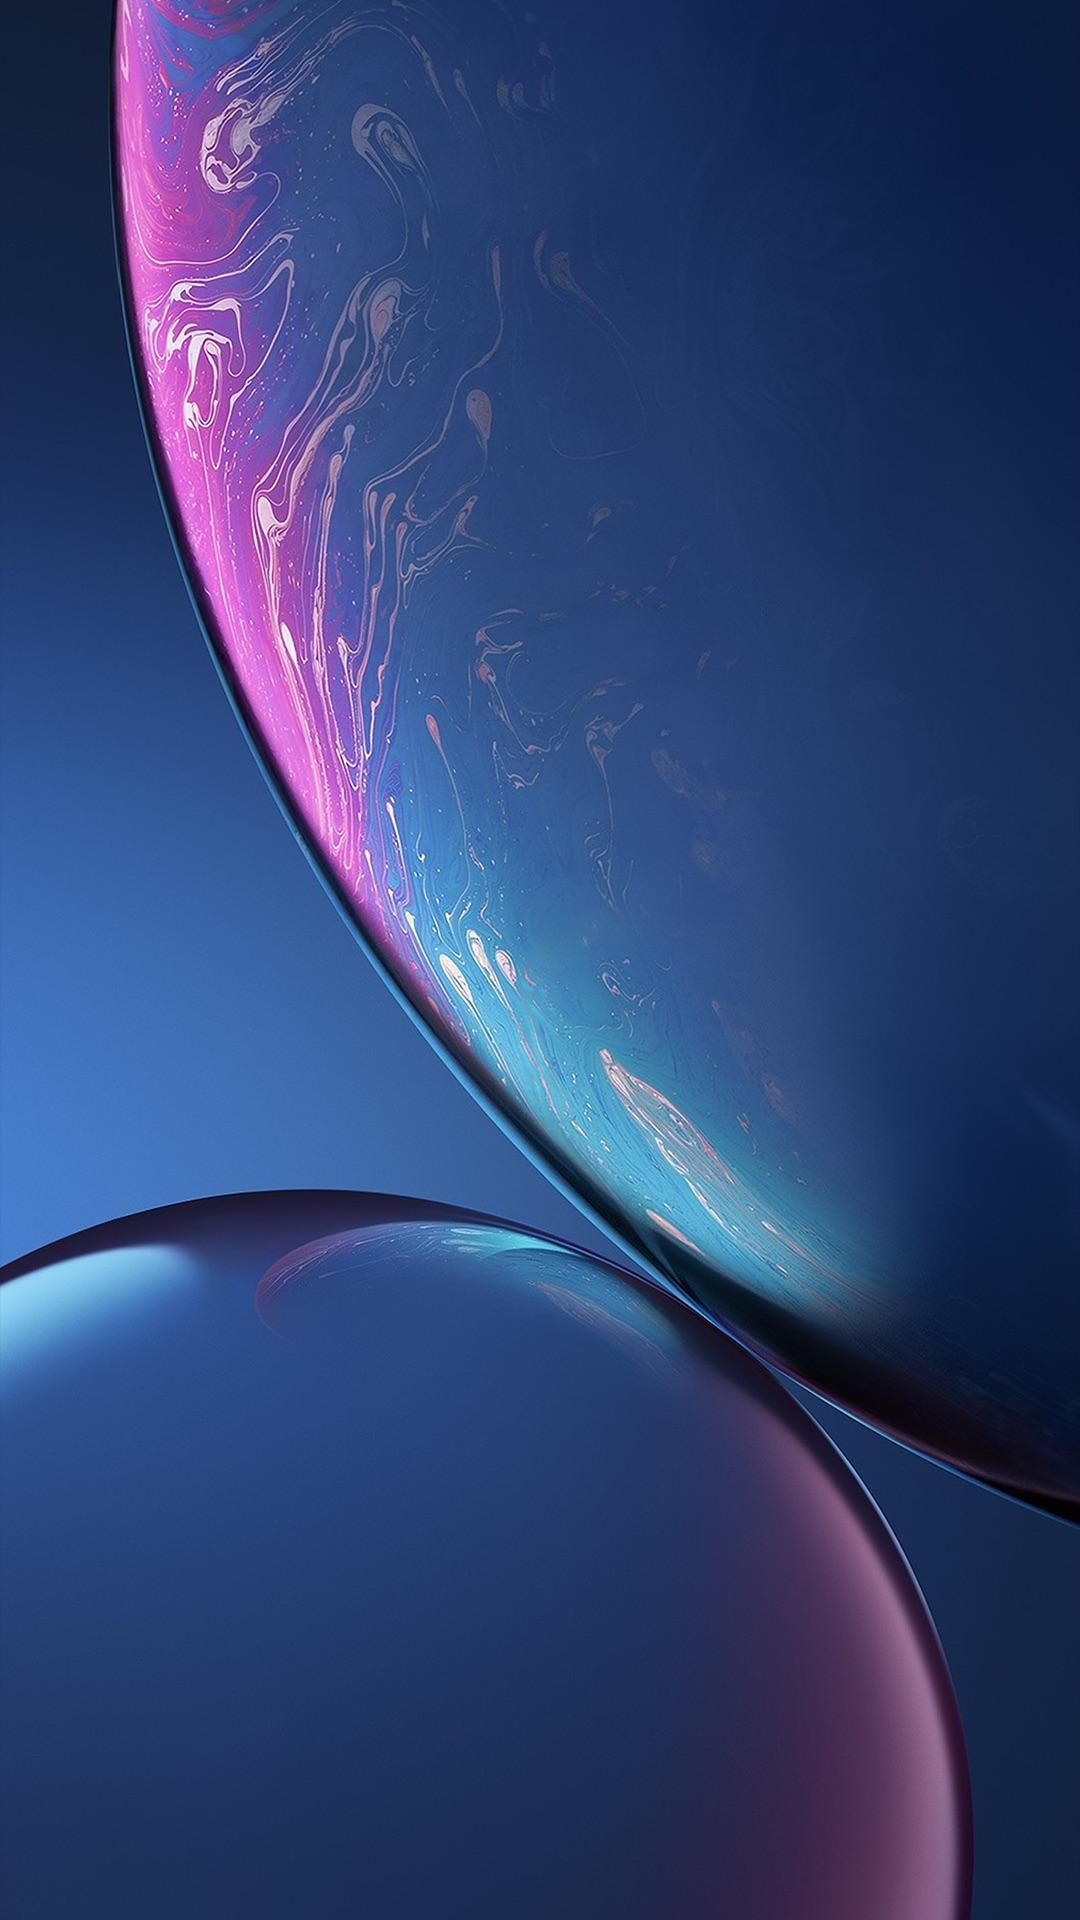 iPhone Xr Wallpaper! (With images) Moving wallpaper